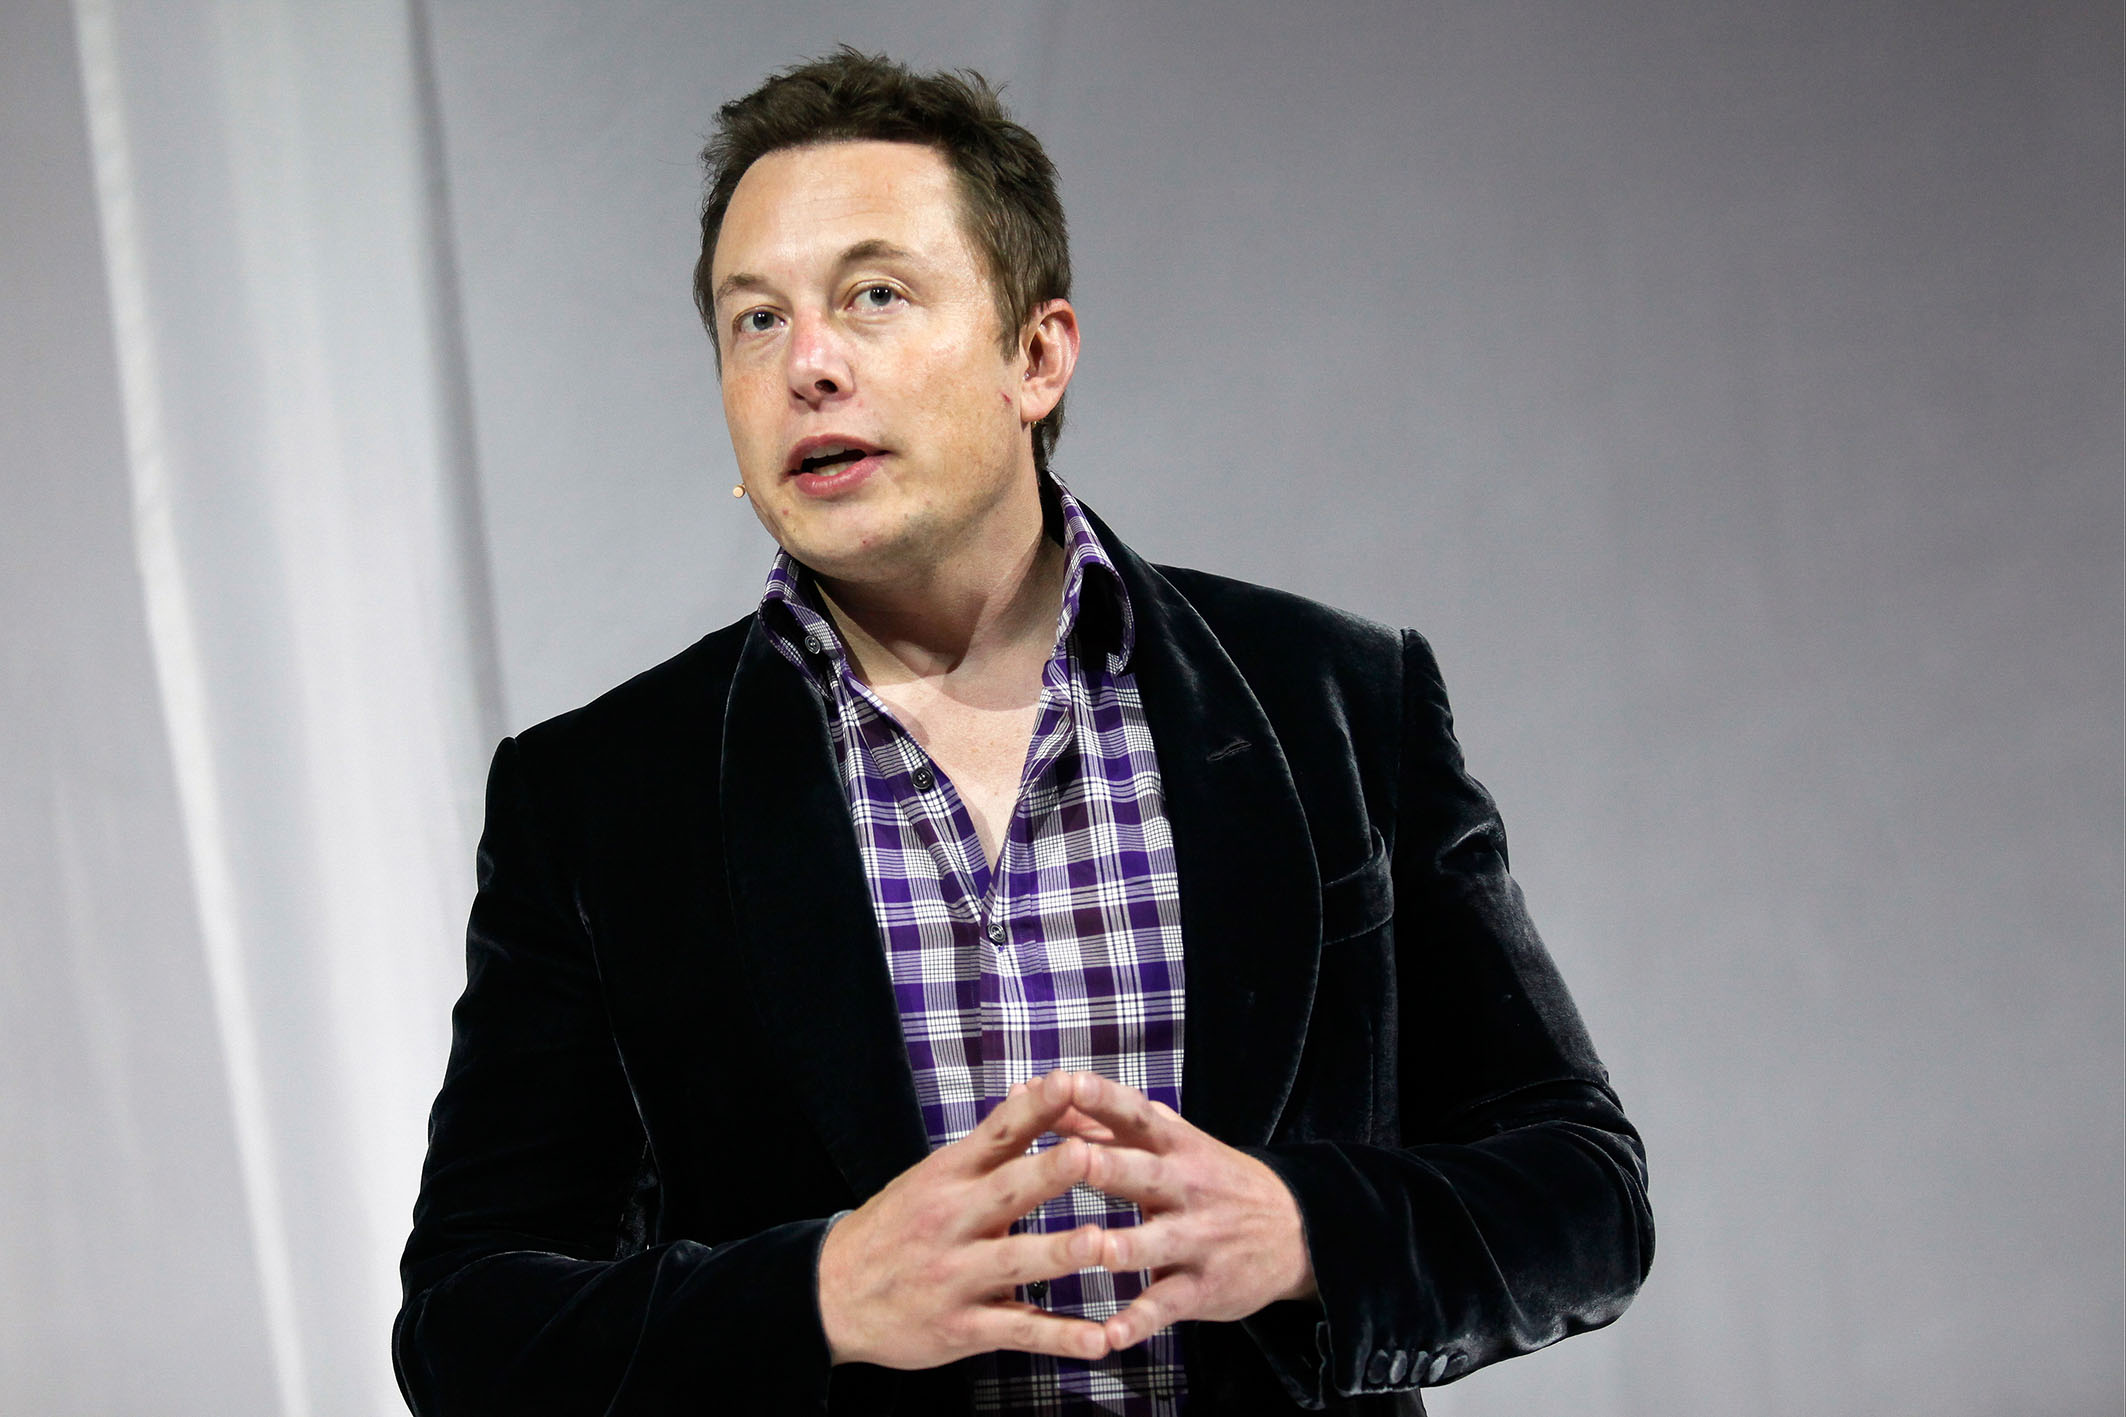 MARS.Elon Musk, Founder, CEO and Lead Designer SpaceX, Co-founder and CEO of Tesla Motors, and Co-founder and Chairman of Solarcity.